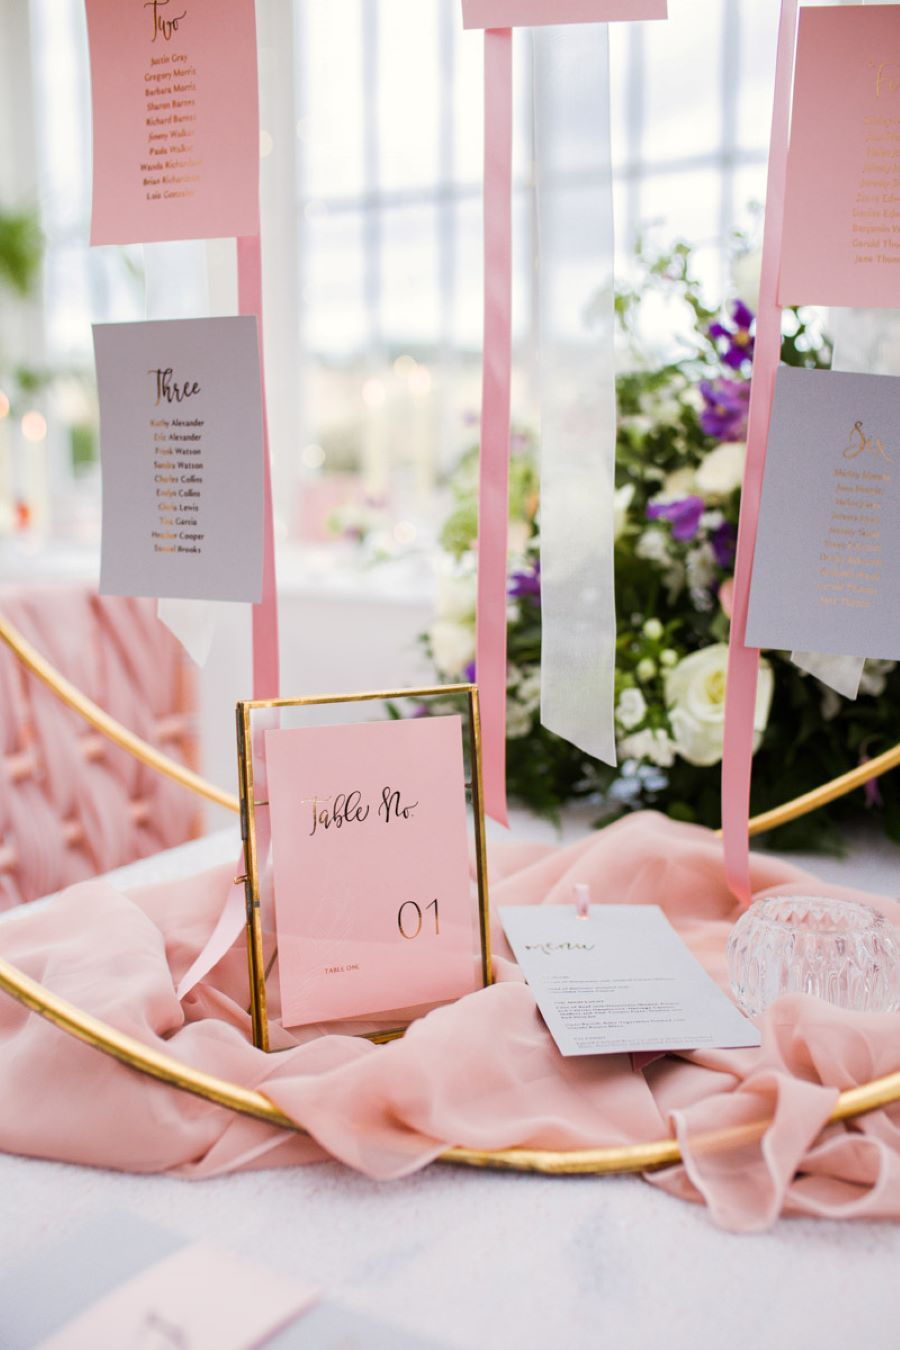 Light and romance with natural blush tones - wedding ideas from Downham Hall. Photographer credit Magical Moments Photography (4)